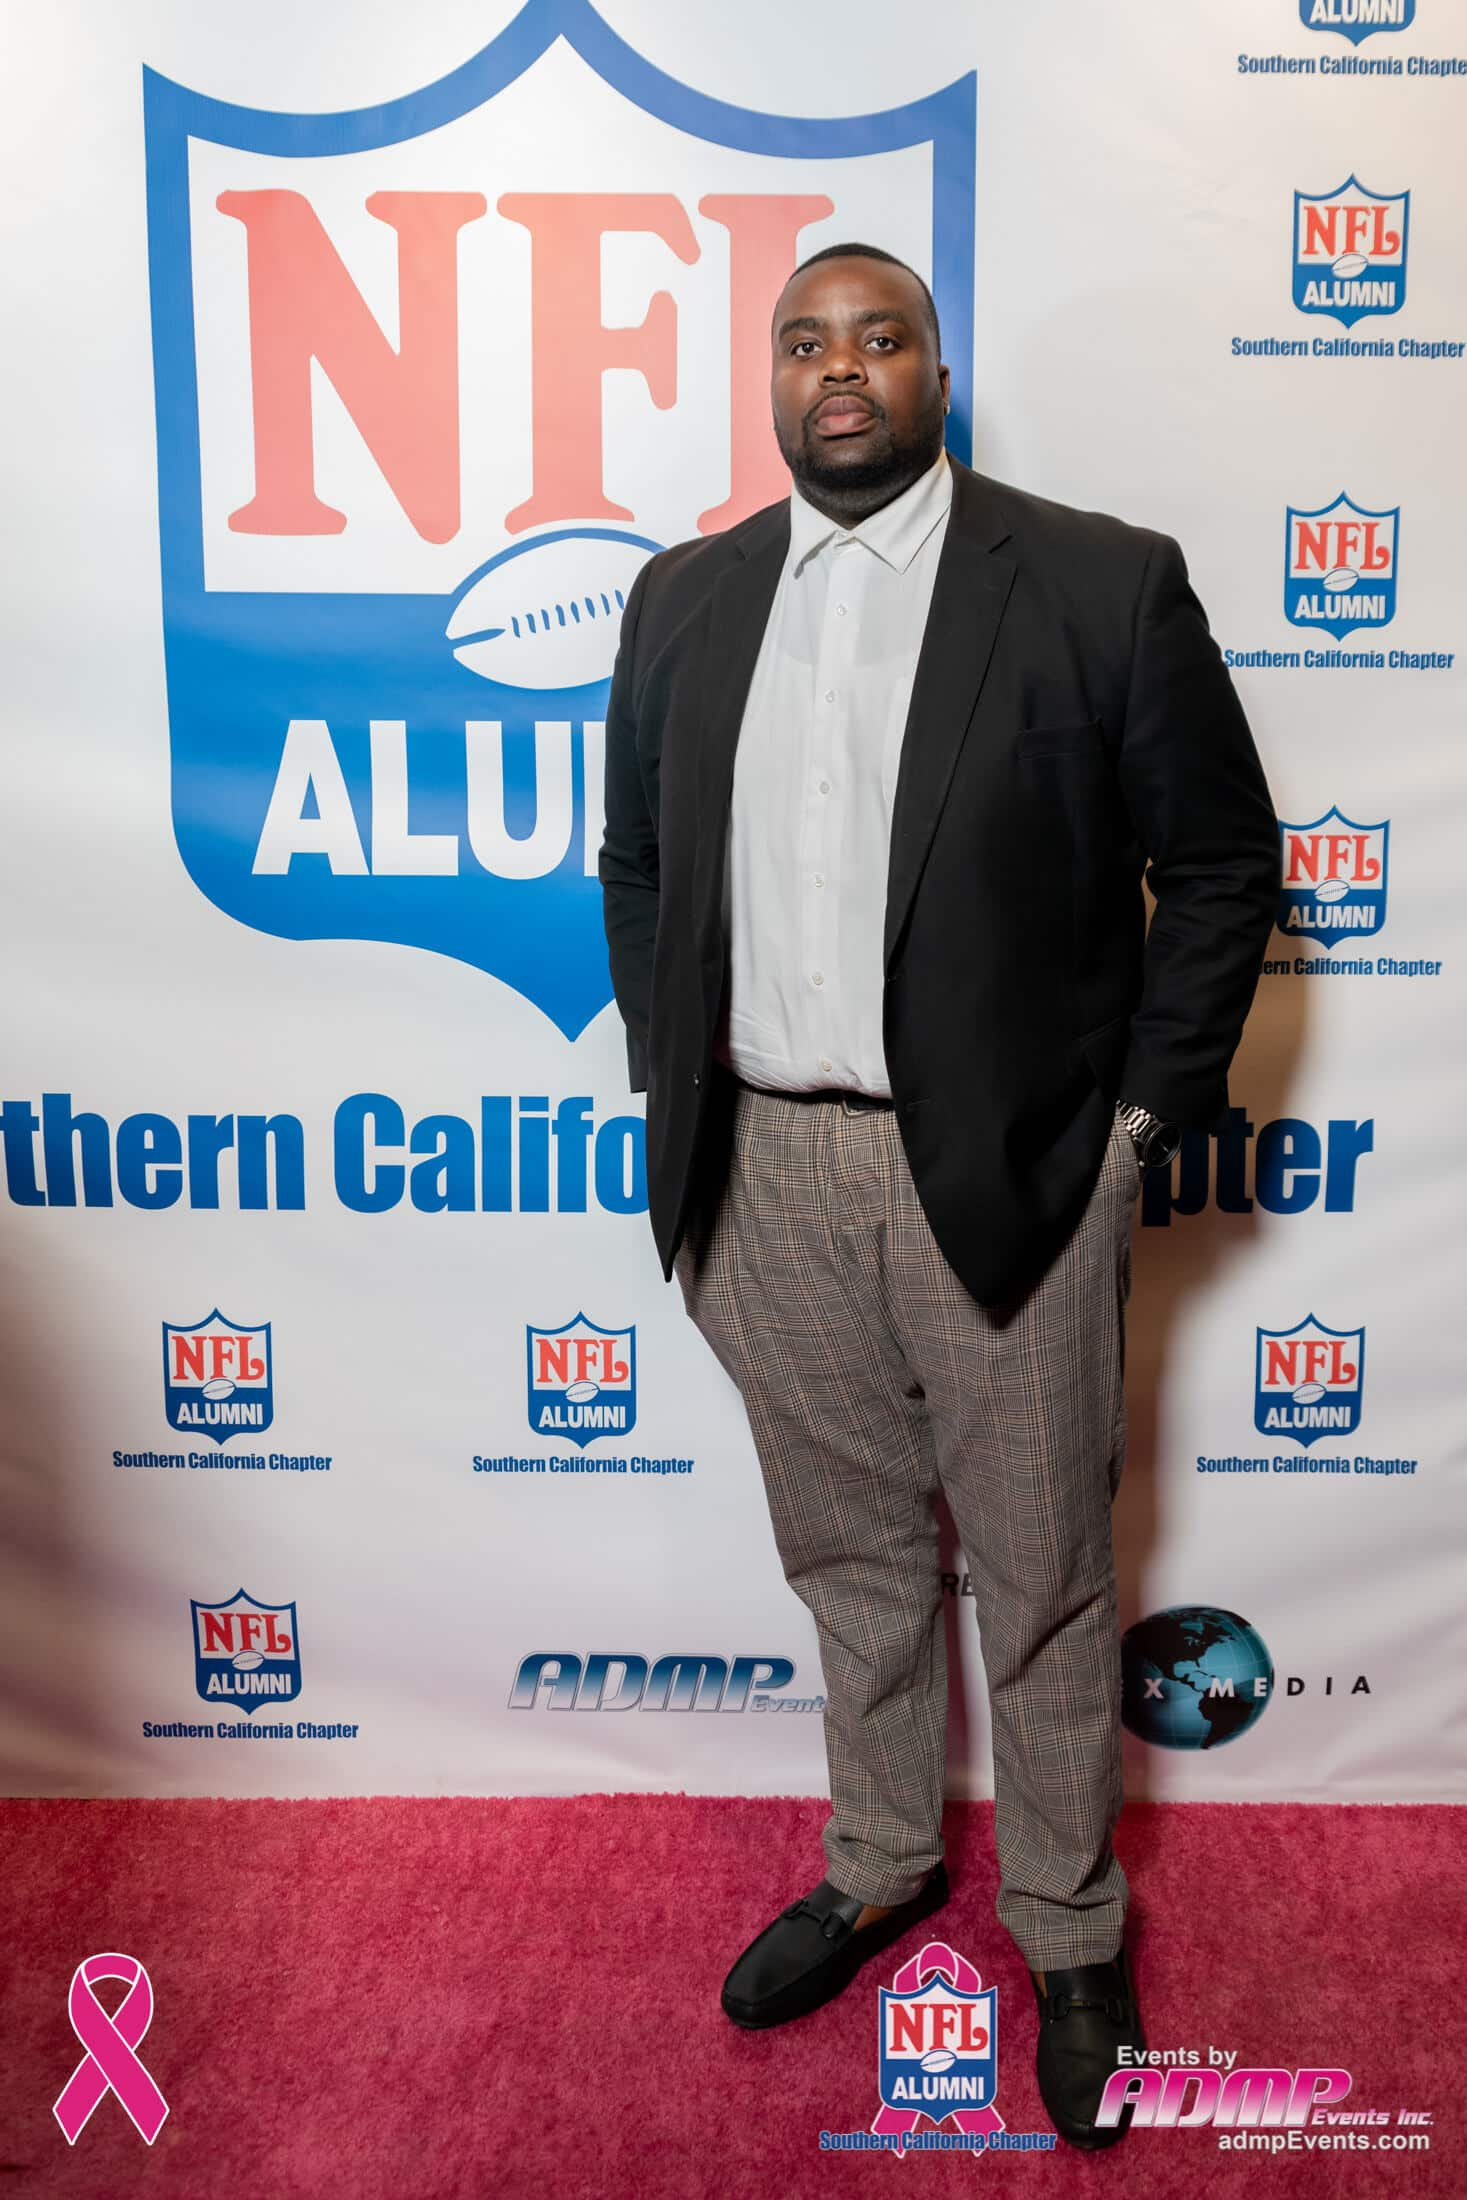 NFL Alumni SoCal Charity Event Series Breast Cancer Event 10-14-19-313